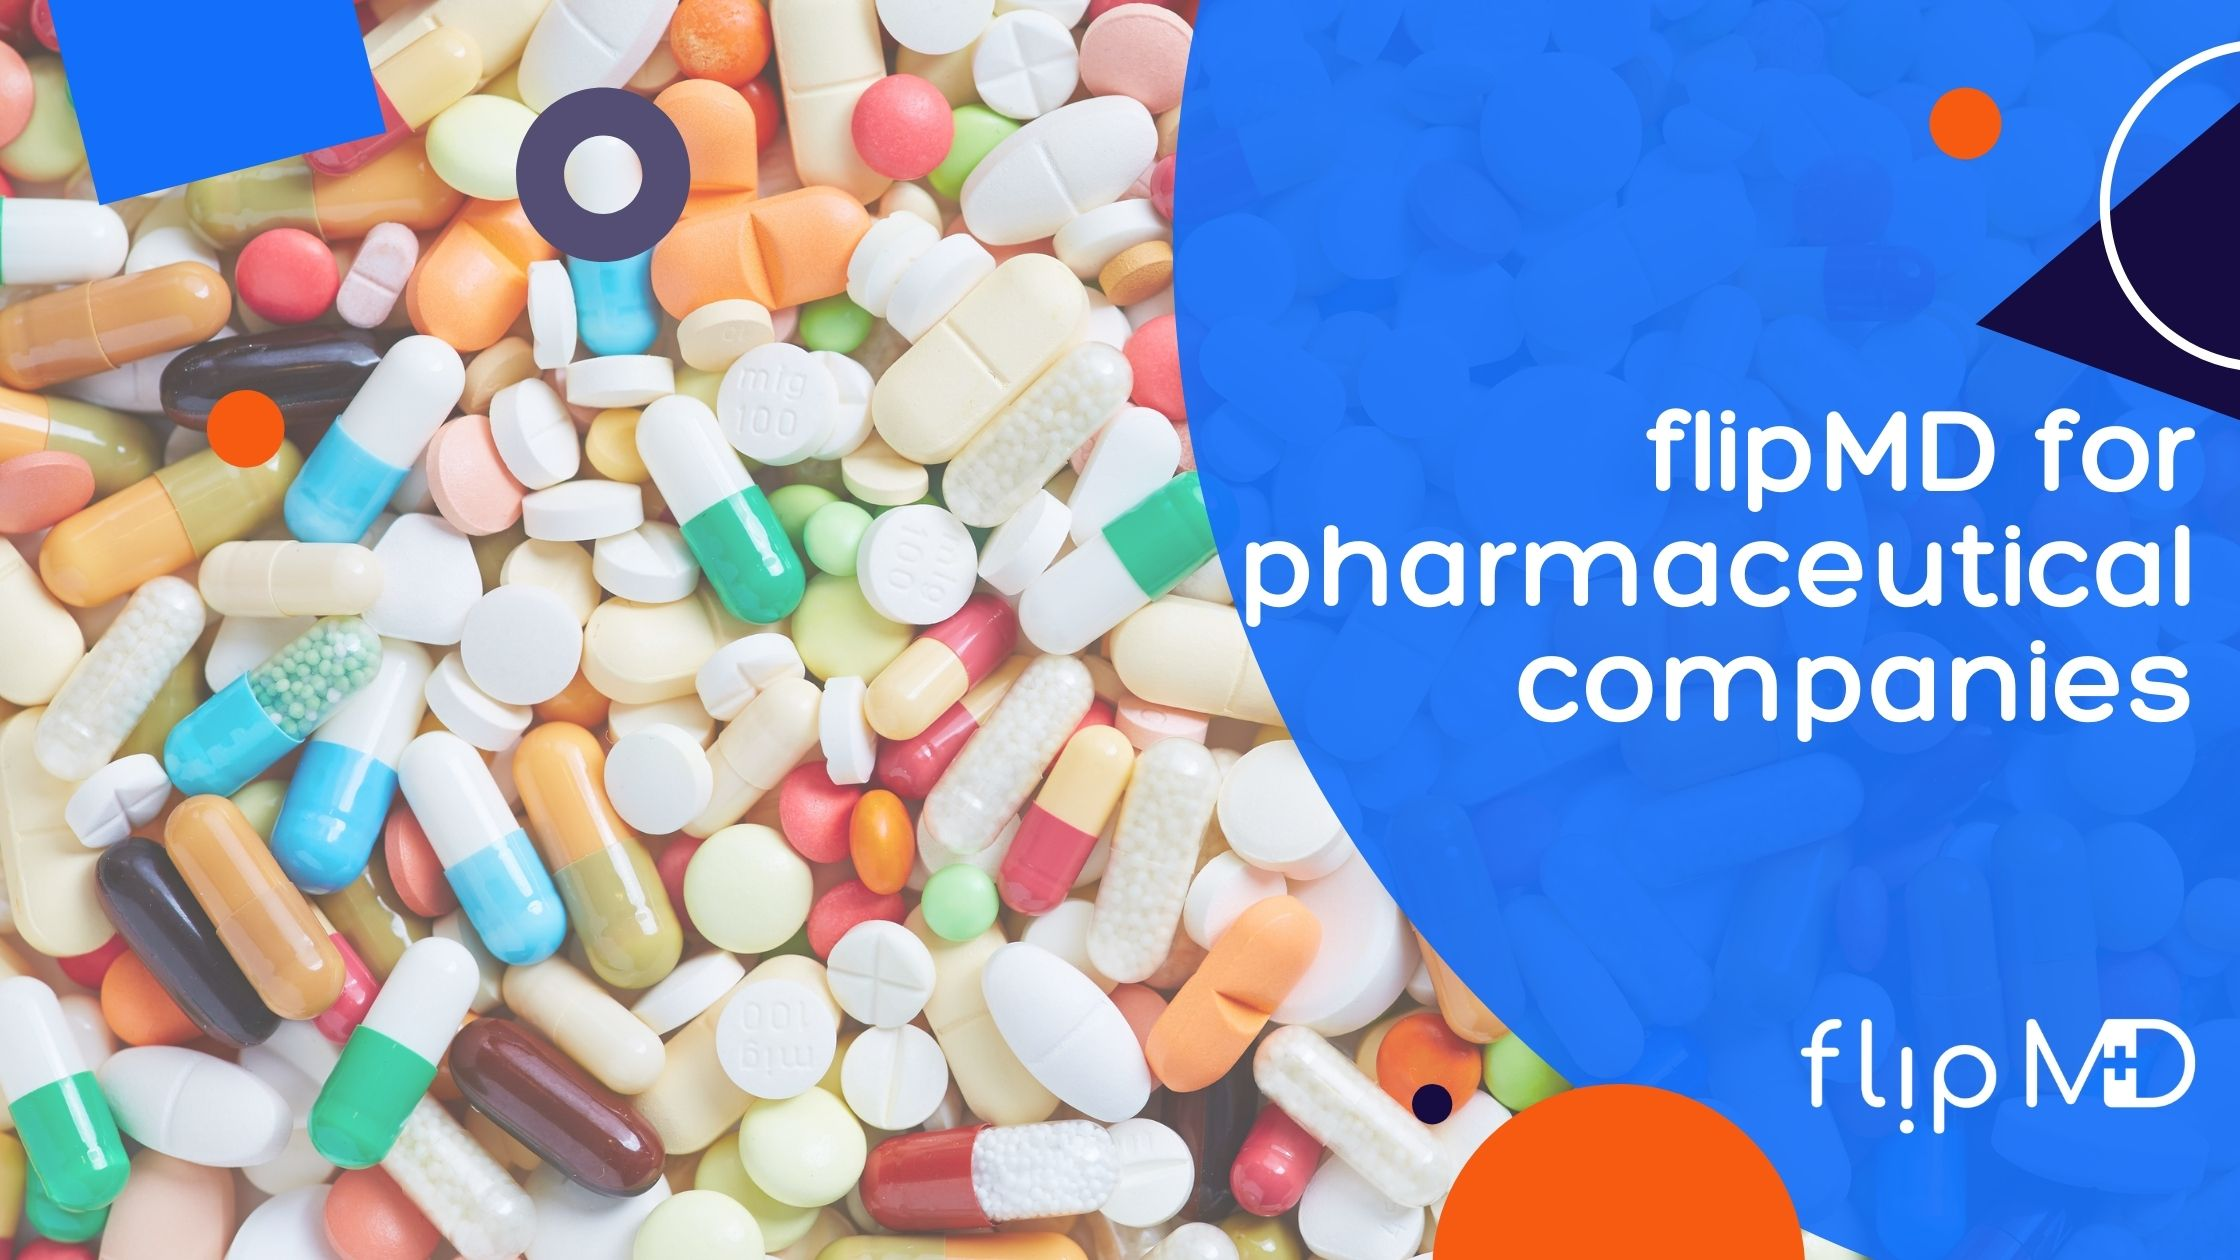 brightly colored pills developed by pharmaceutical companies